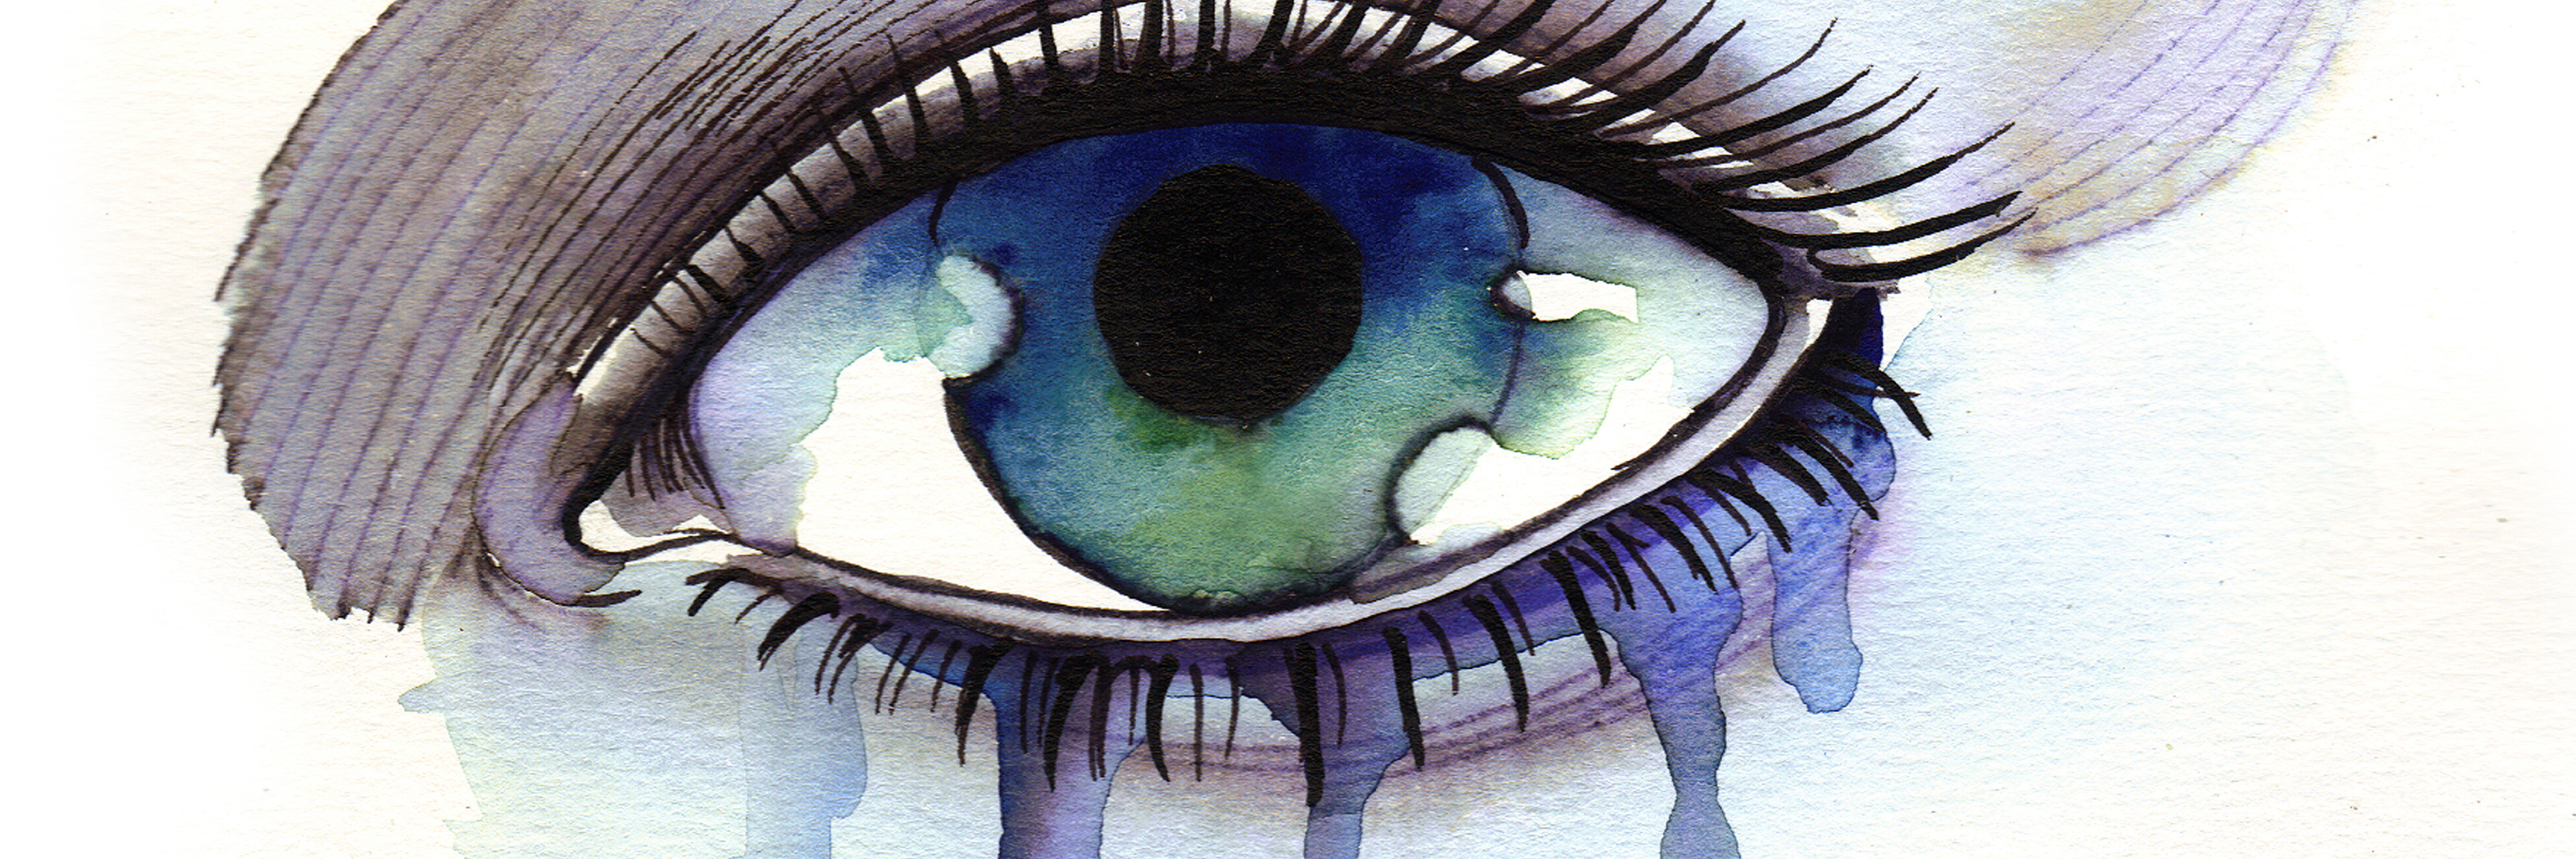 watercolor drawing of crying female eye